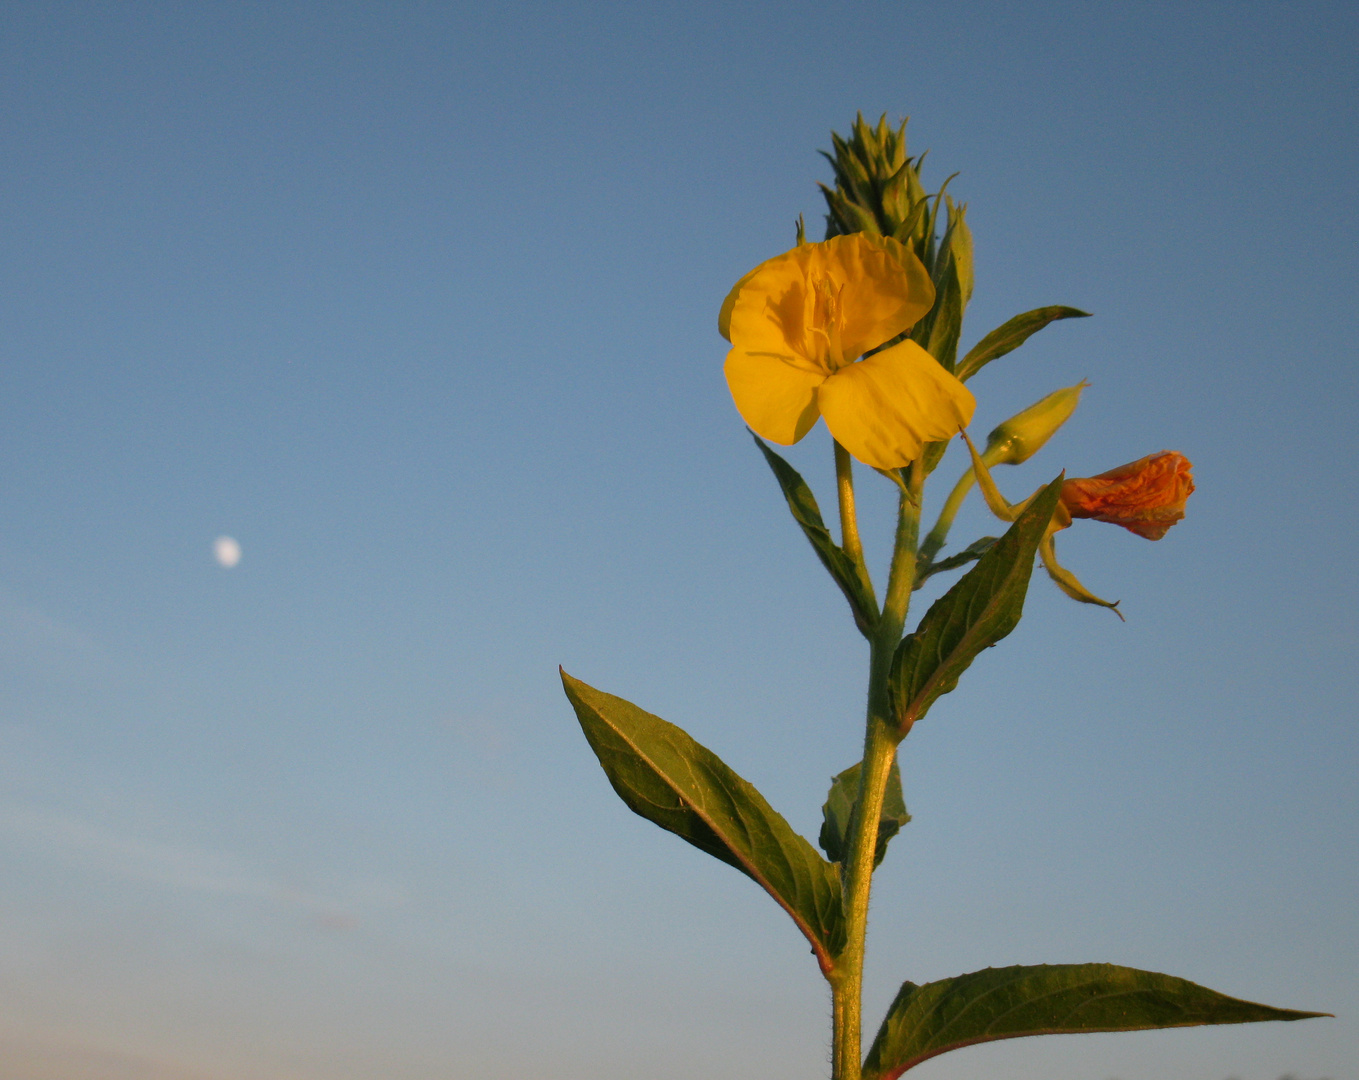 at sunset light with moon